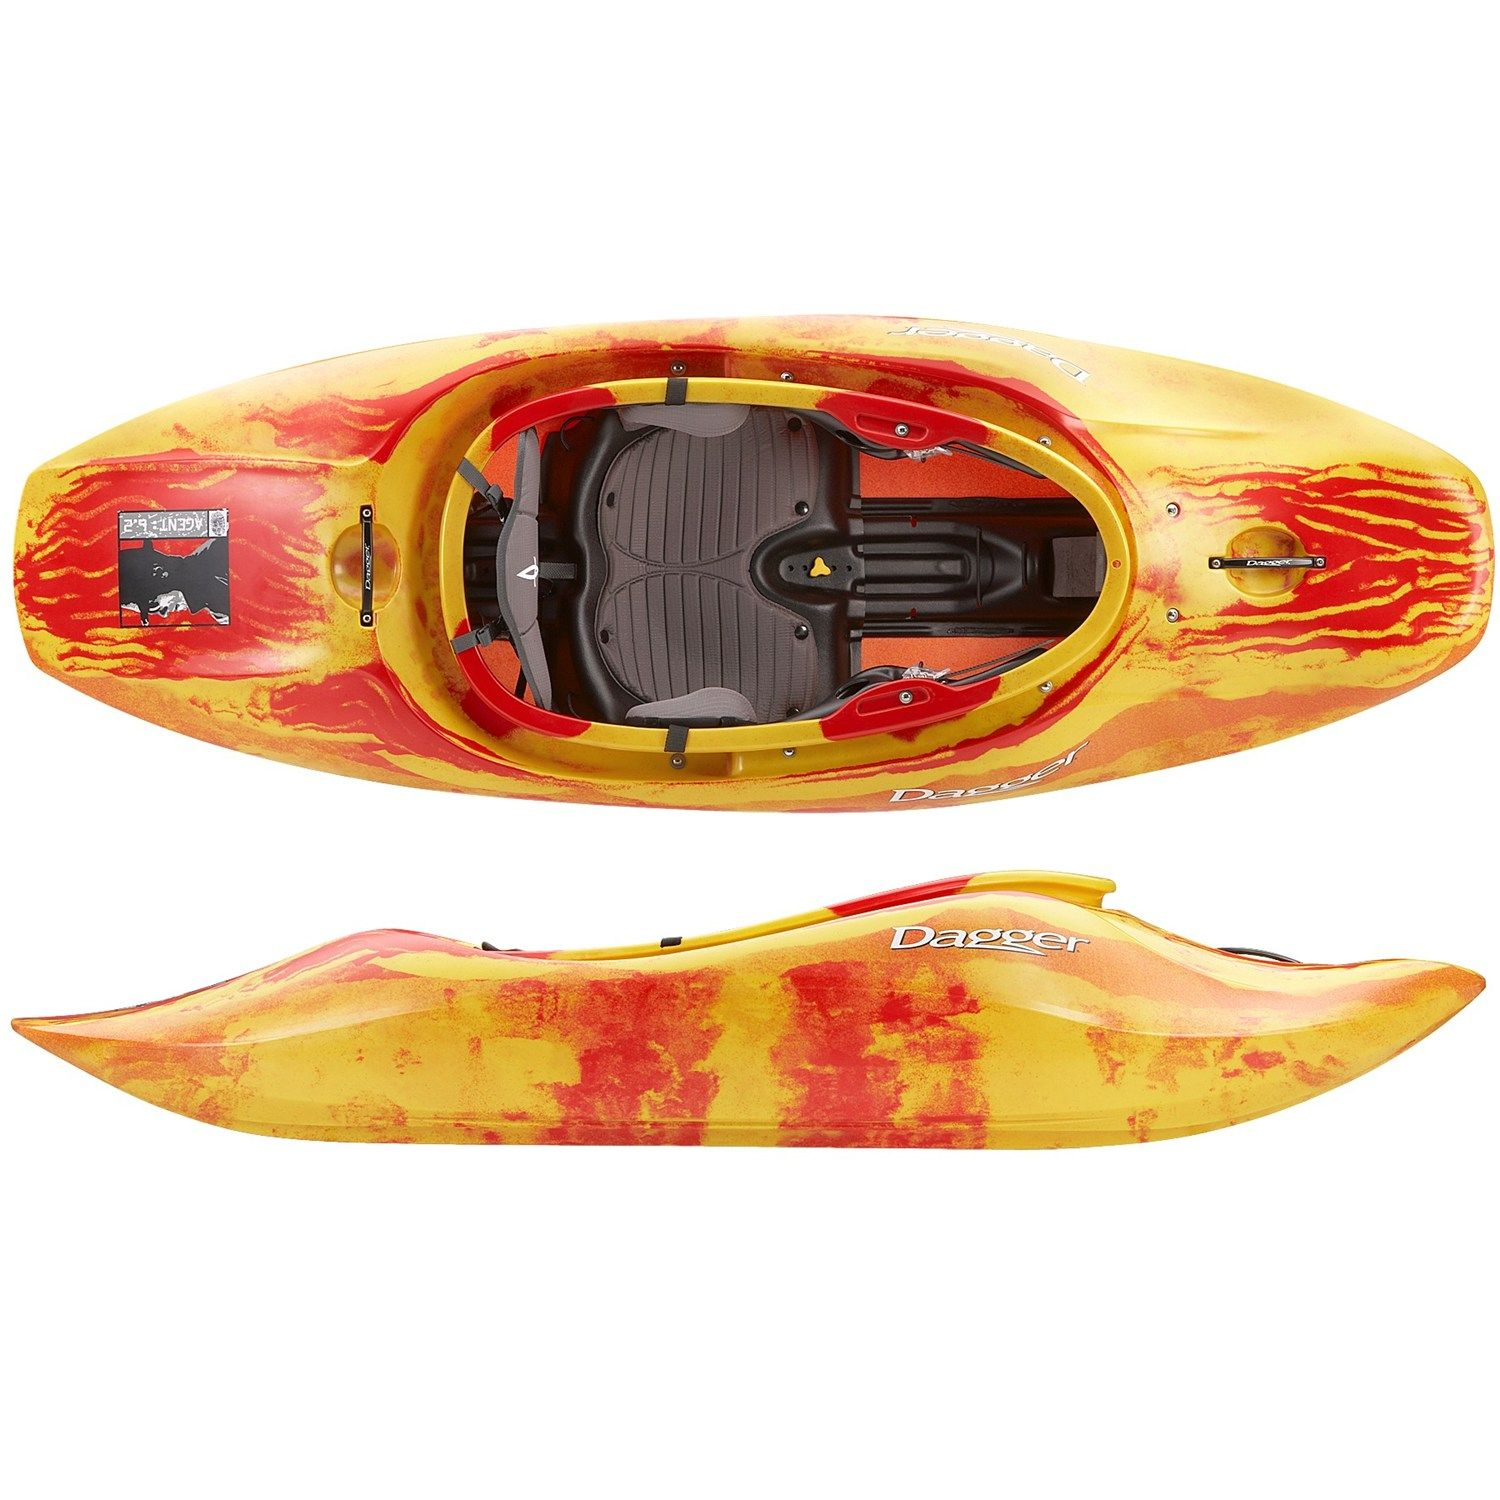 Whitewater Kayaks For Sale >> Dagger Agent 6 2 Whitewater Kayak 6 2 Kayaking Whitewater